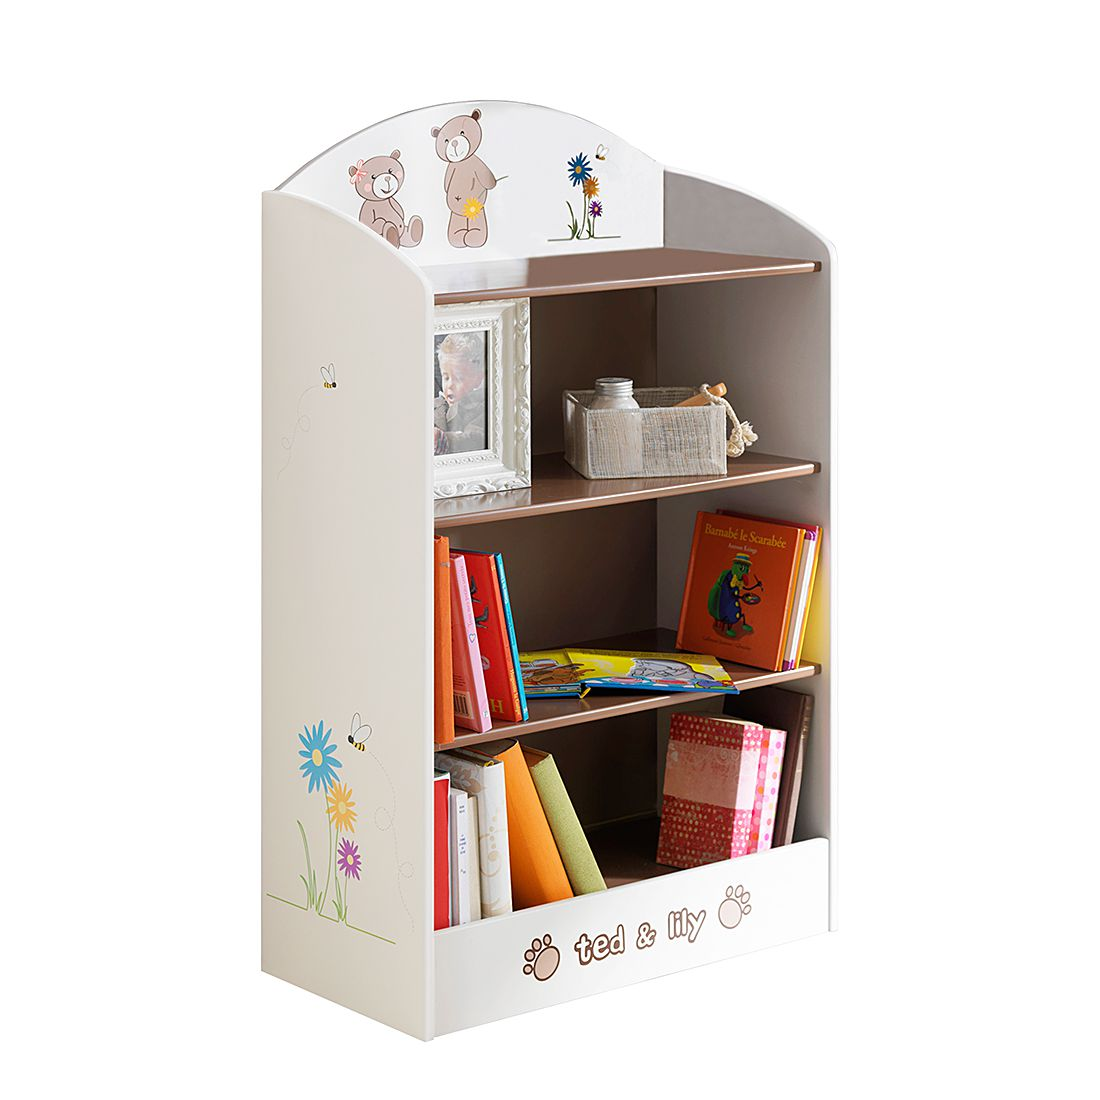 Bücherregal Ted – Beige/Chocolat, Kids Club Collection bestellen